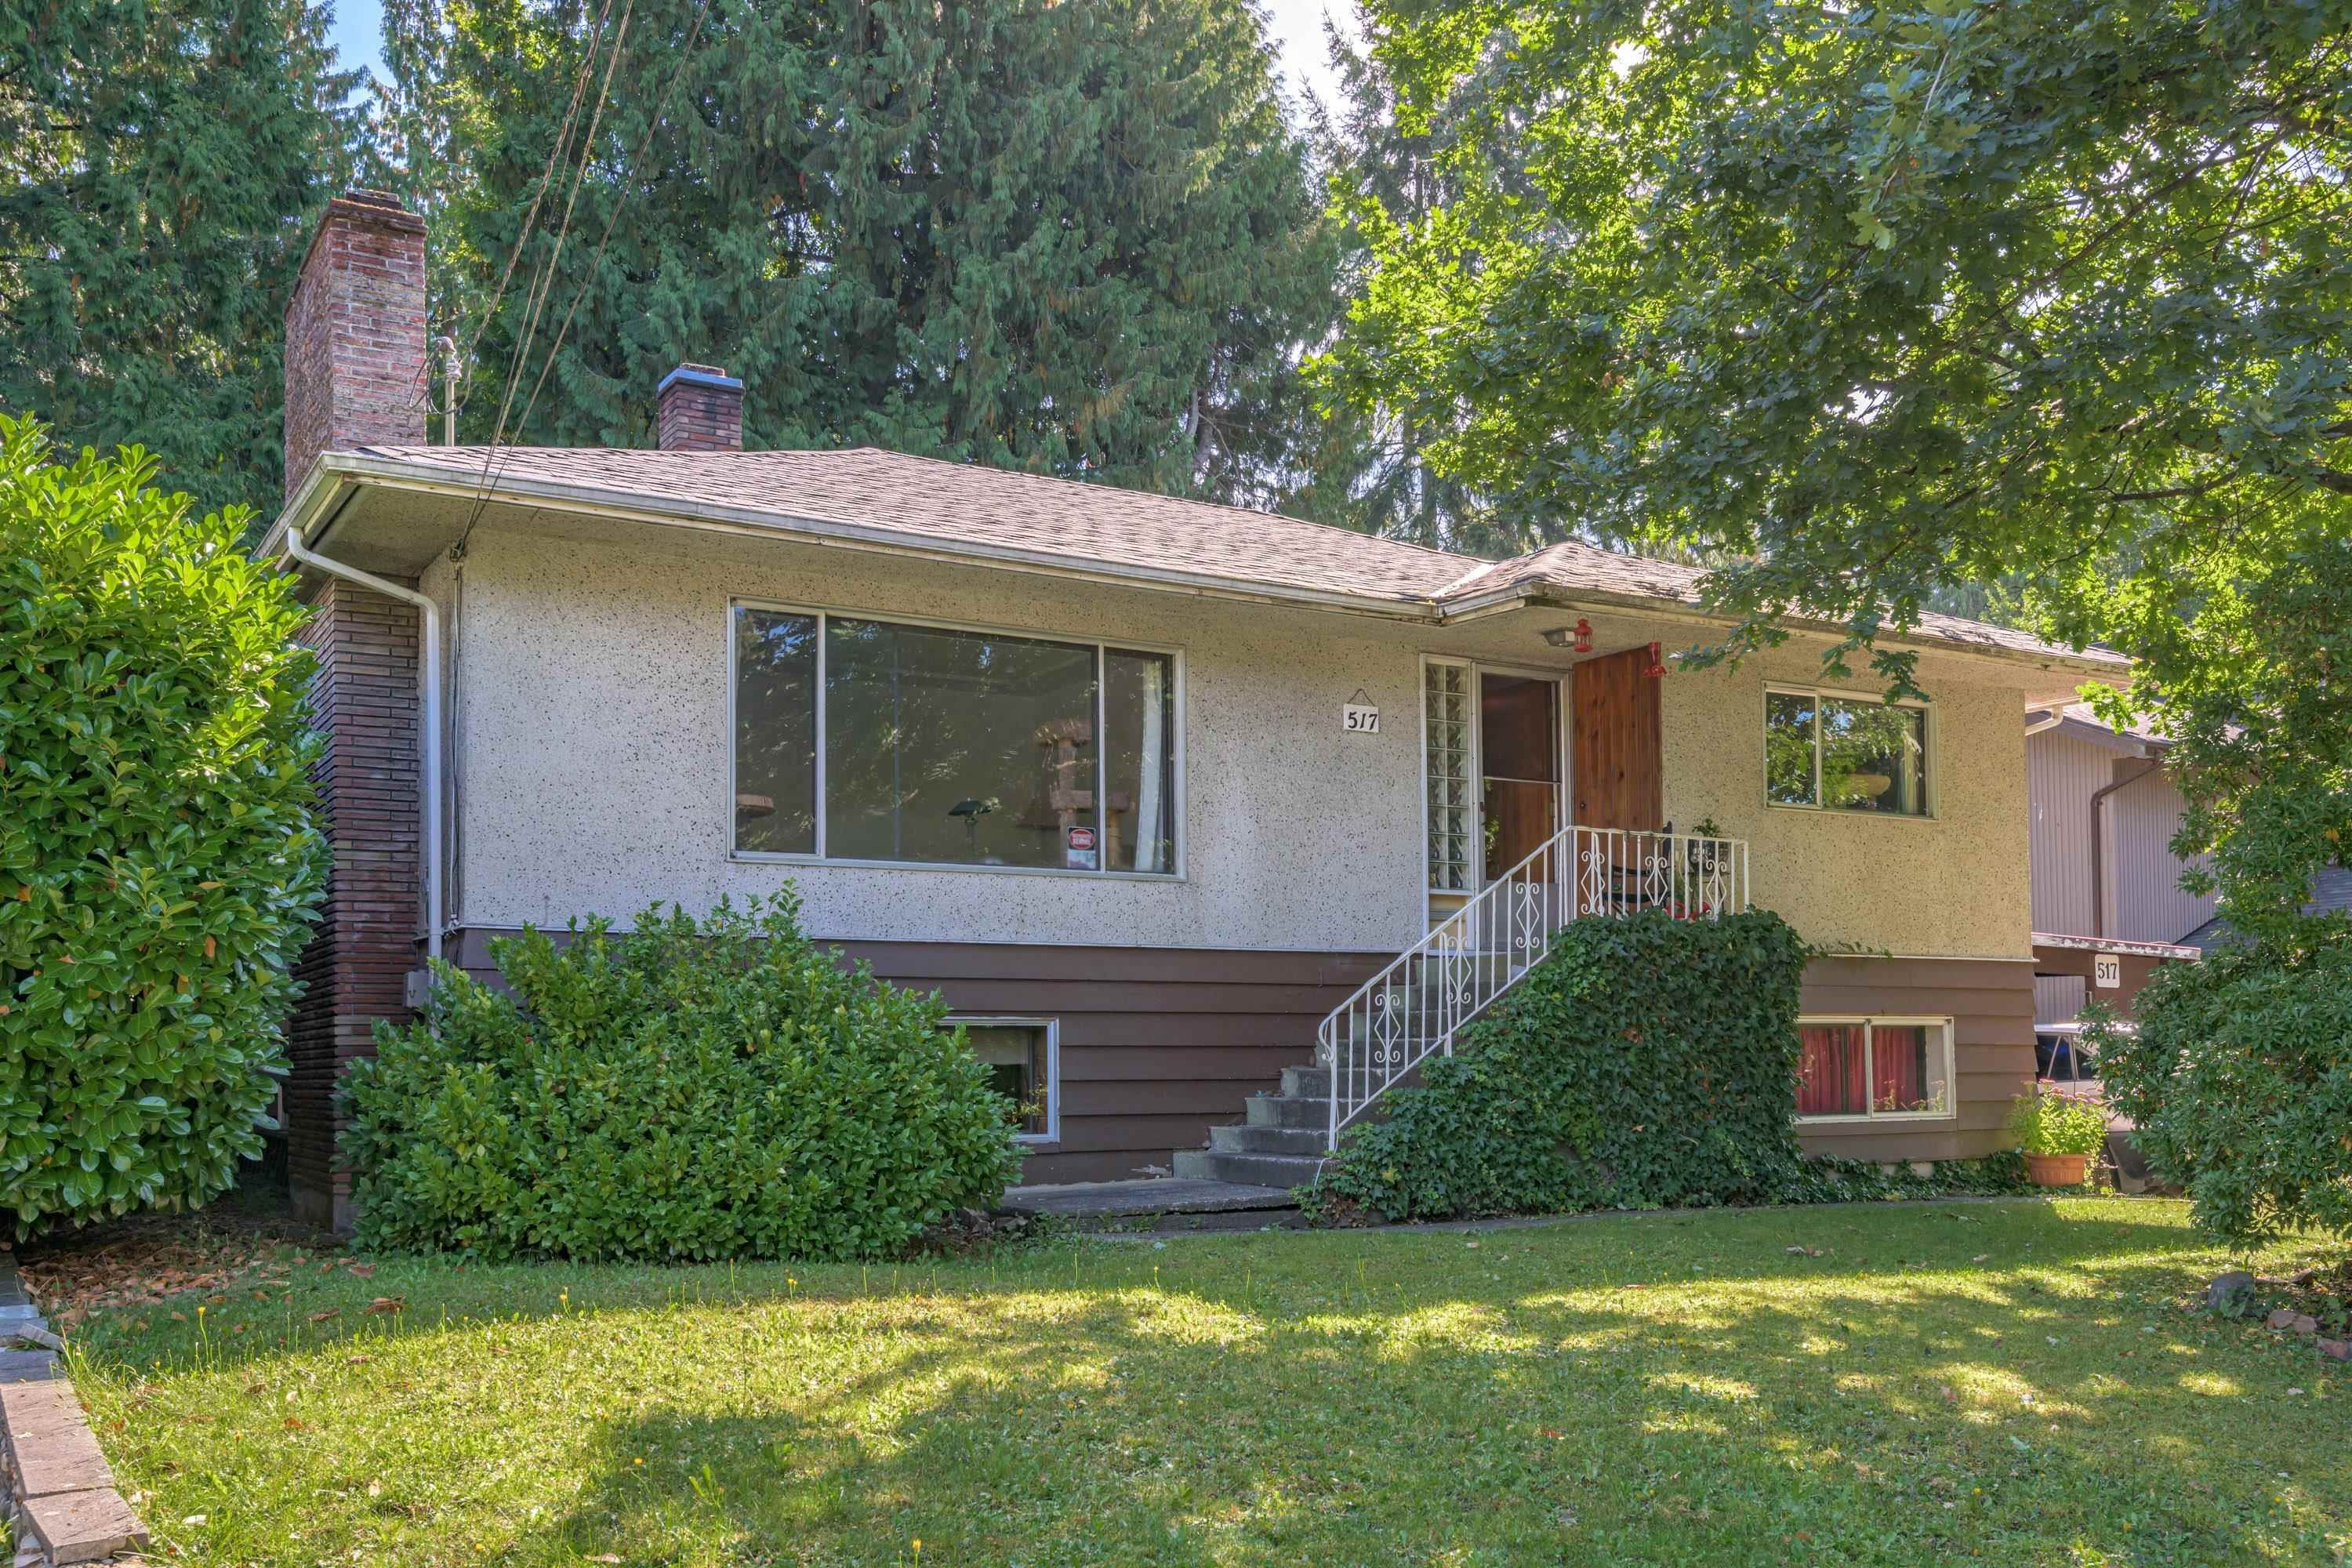 Main Photo: 517 ROXHAM Street in Coquitlam: Coquitlam West House for sale : MLS®# R2619166